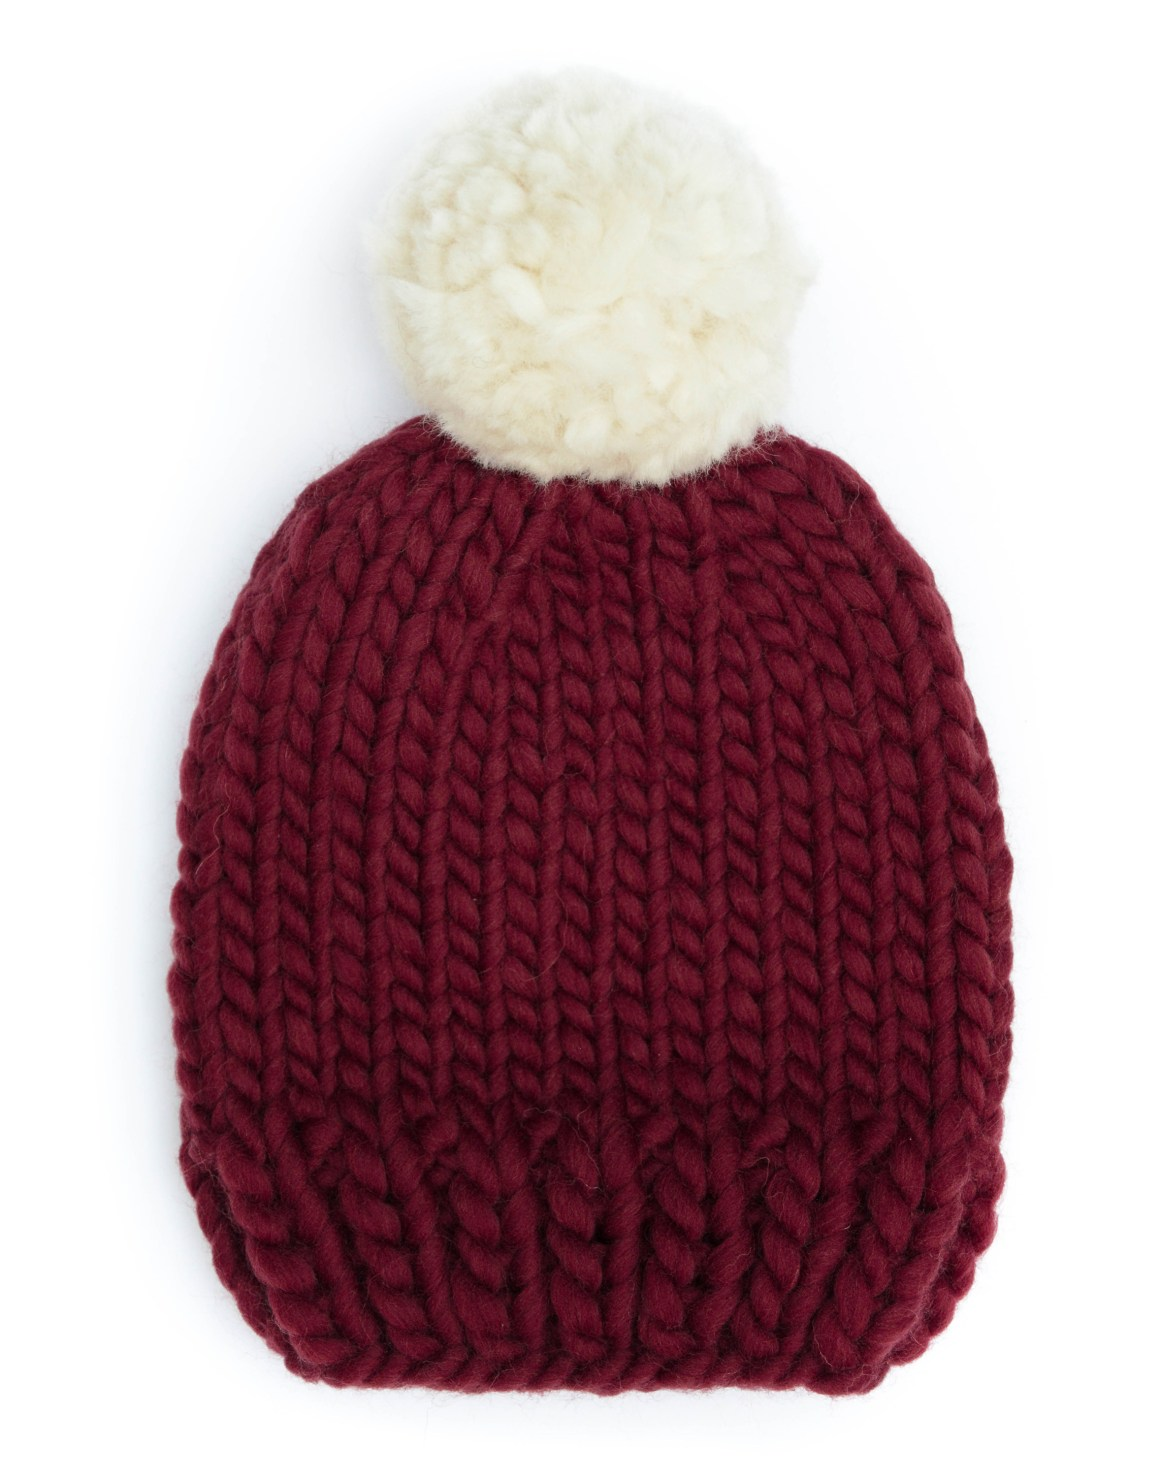 off_the_wool_handmade_knitted_bobble_hat_pompom_maroon_ivory